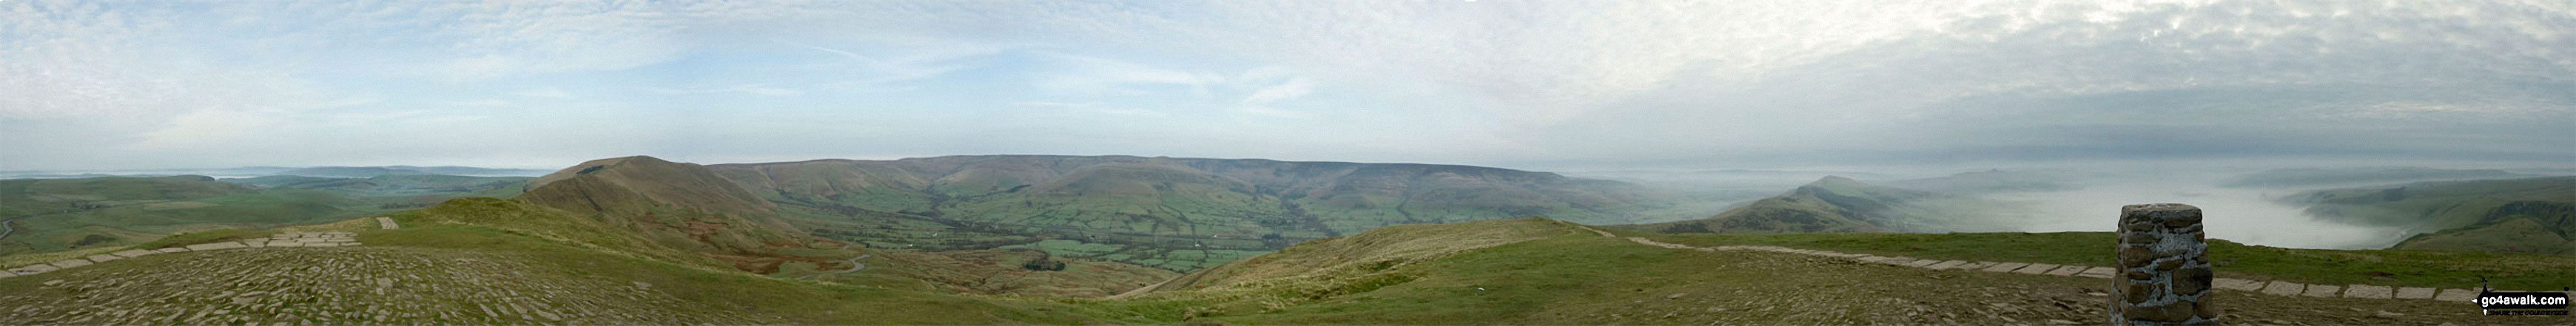 The Great Ridge - Lord's Seat (Rushup Edge), Rushup Edge, Kinder Scout, The Vale of Edale, Edale, Hollins Cross, Back Tor (Hollins Cross), Lose Hill (Ward's Piece), Hope and Castleton under the mist from Mam Tor